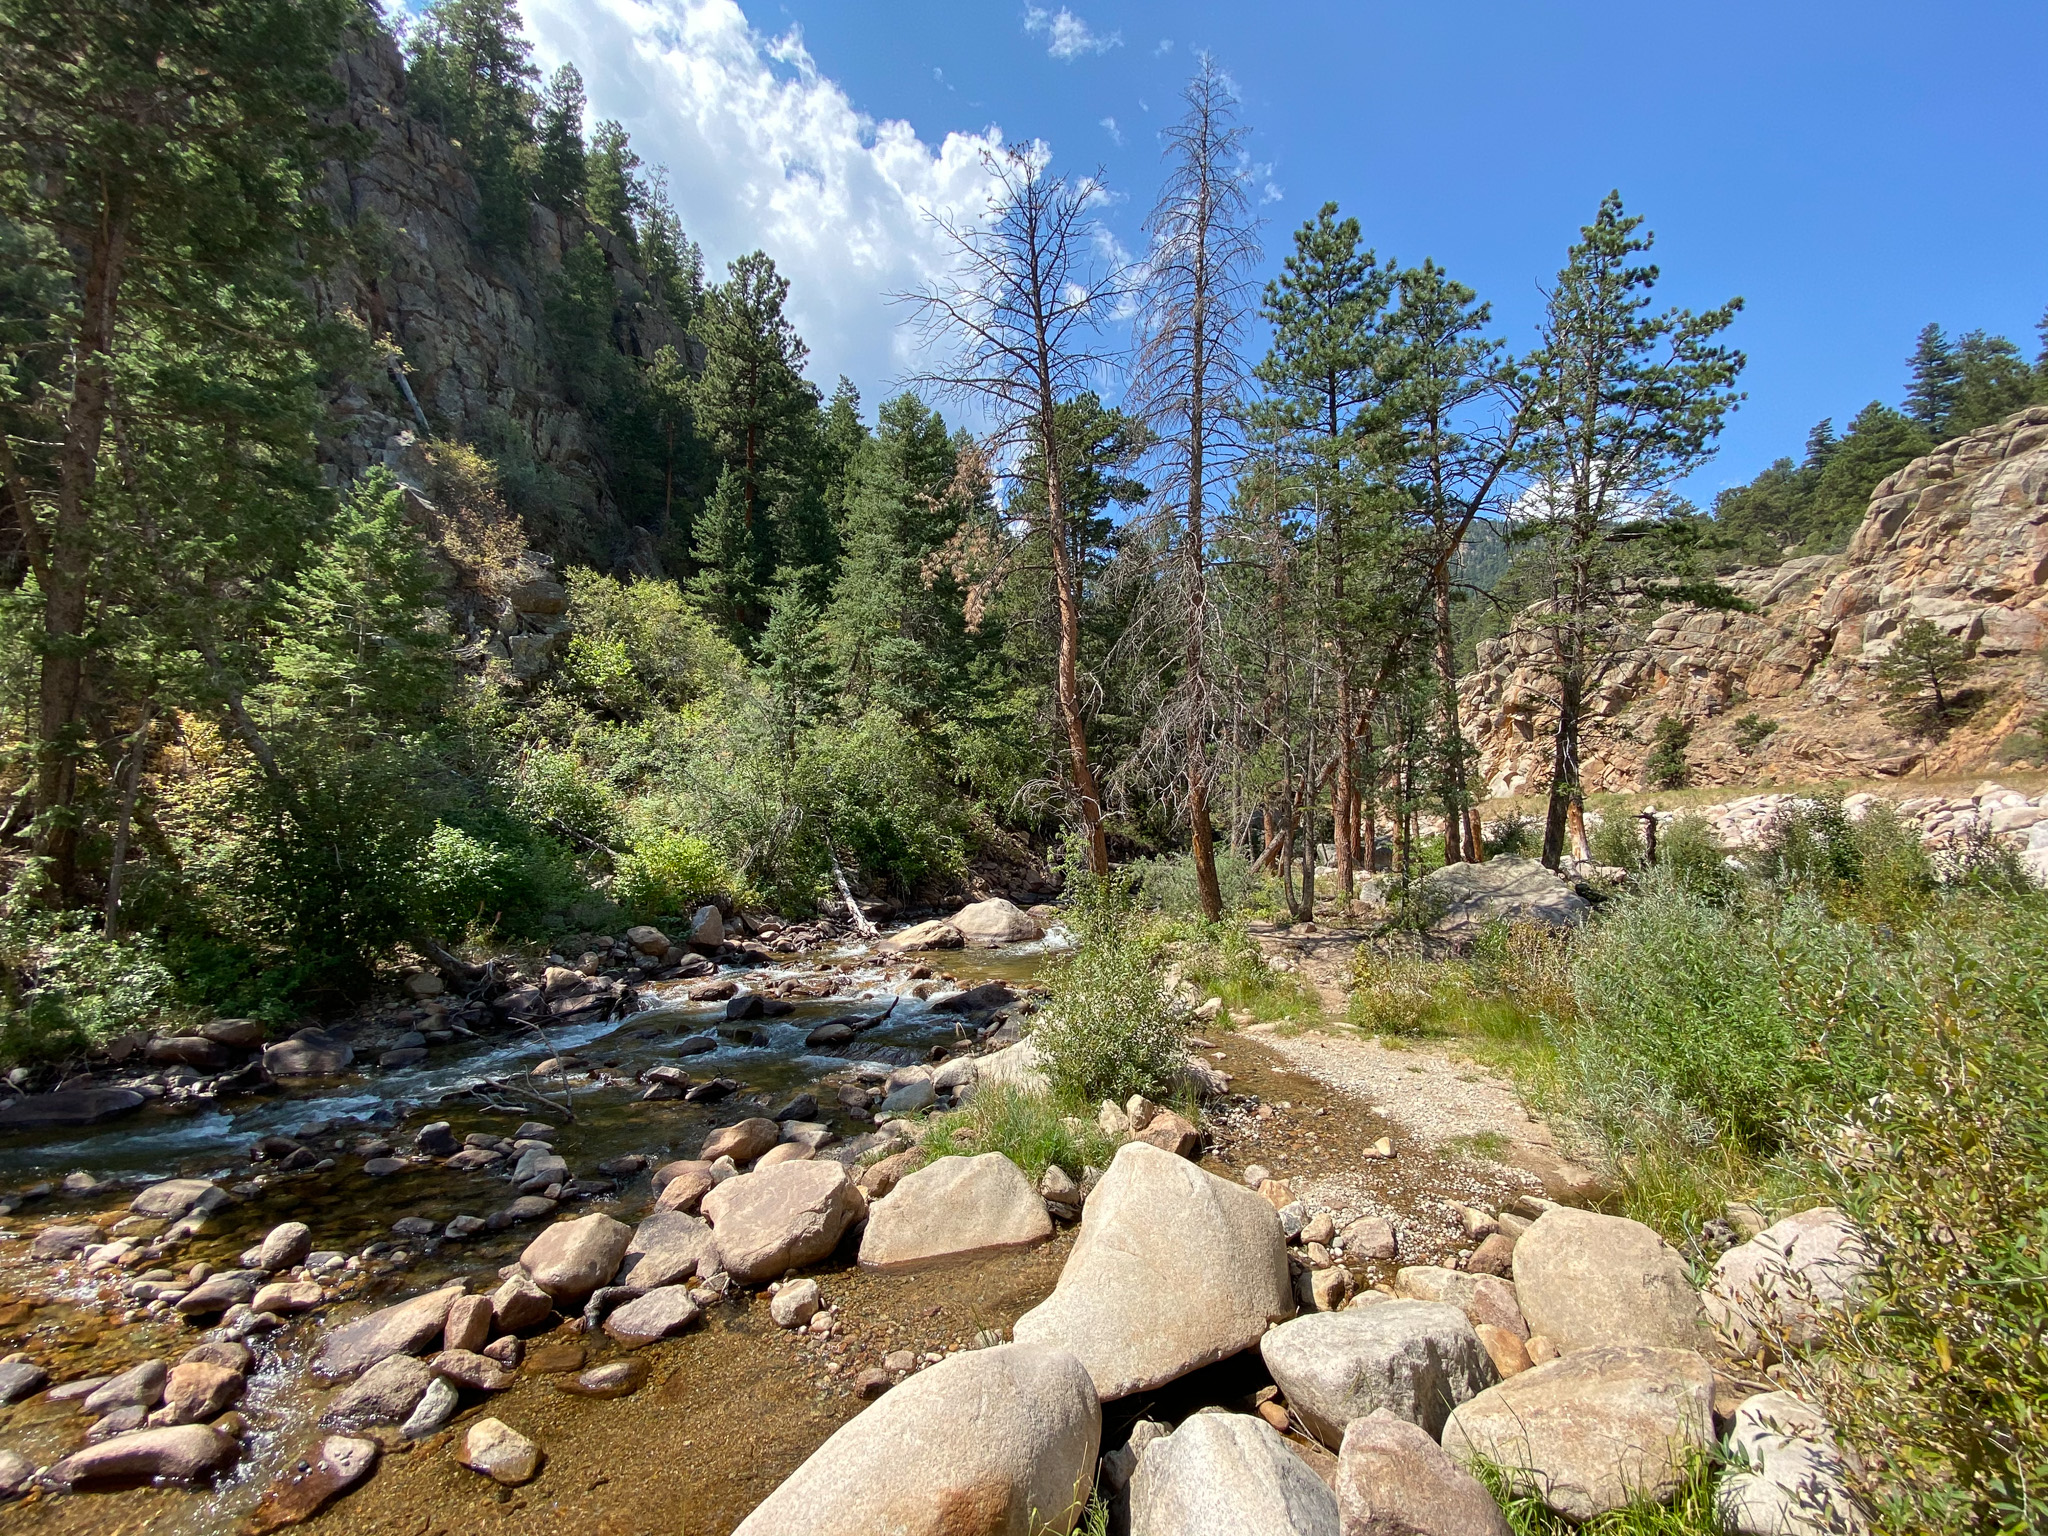 South Saint Vrain Creek